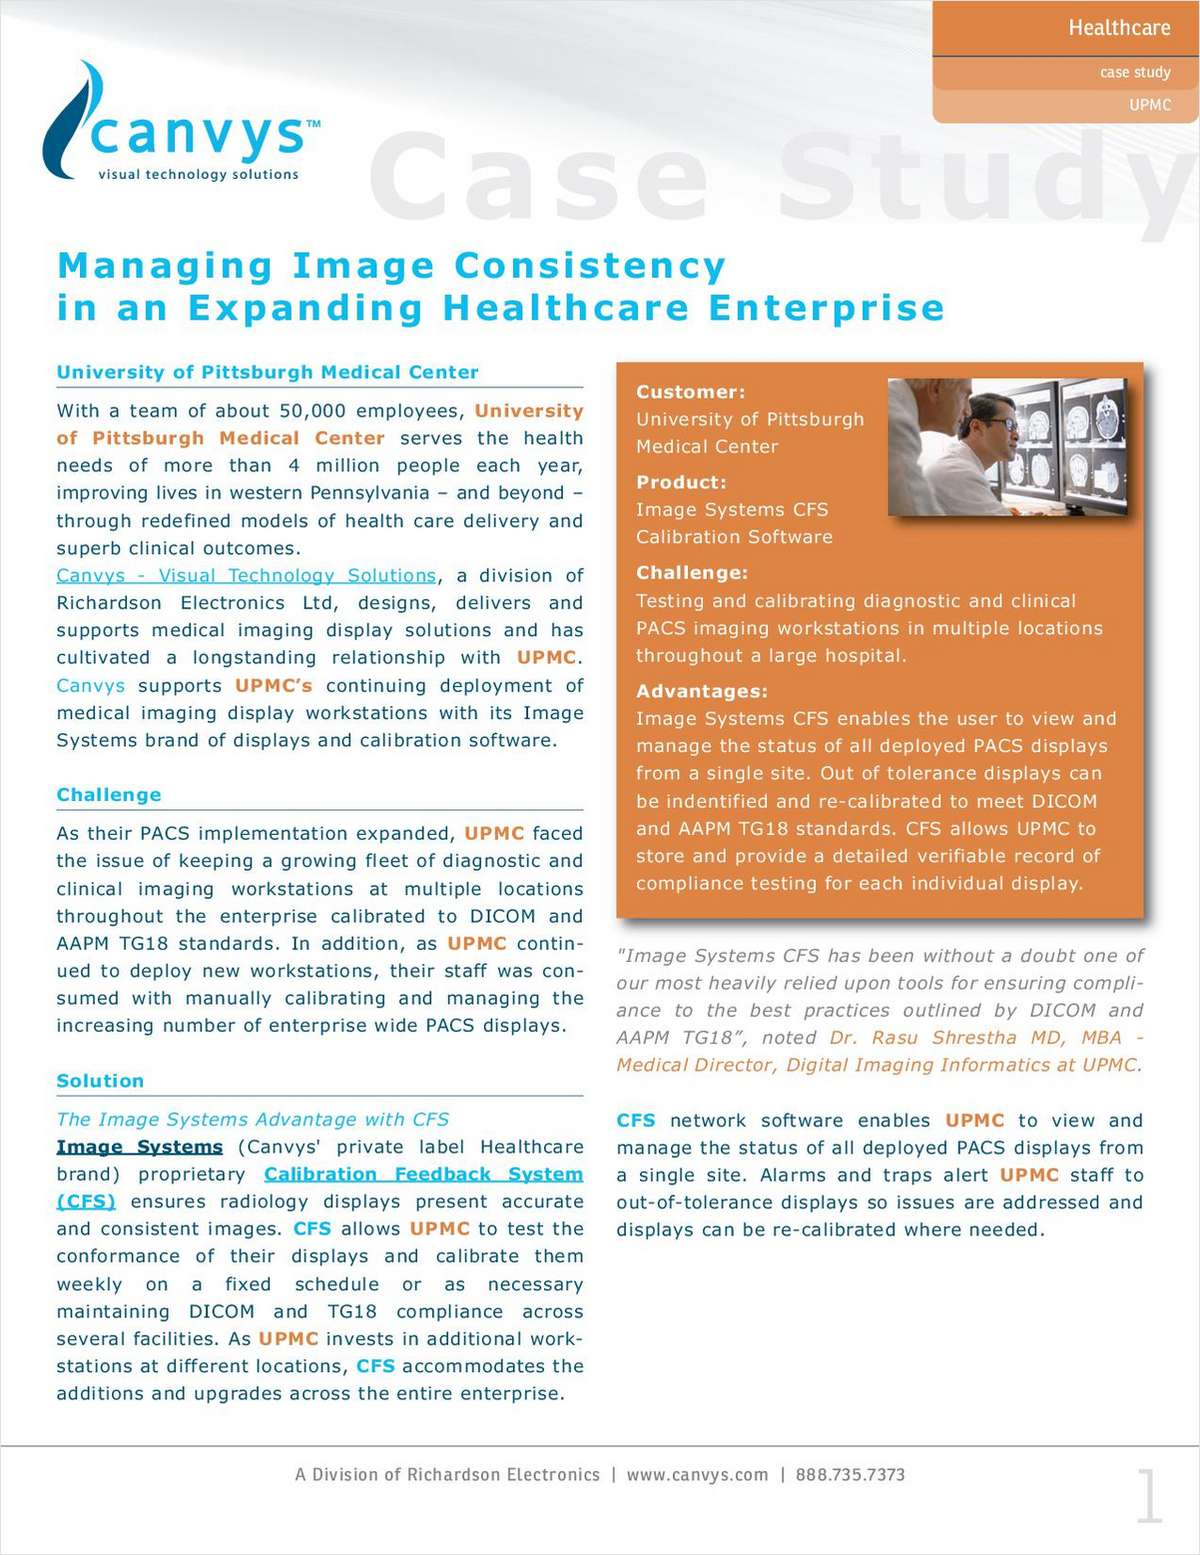 Case Study: Managing Image Consistency in an Expanding Healthcare Enterprise